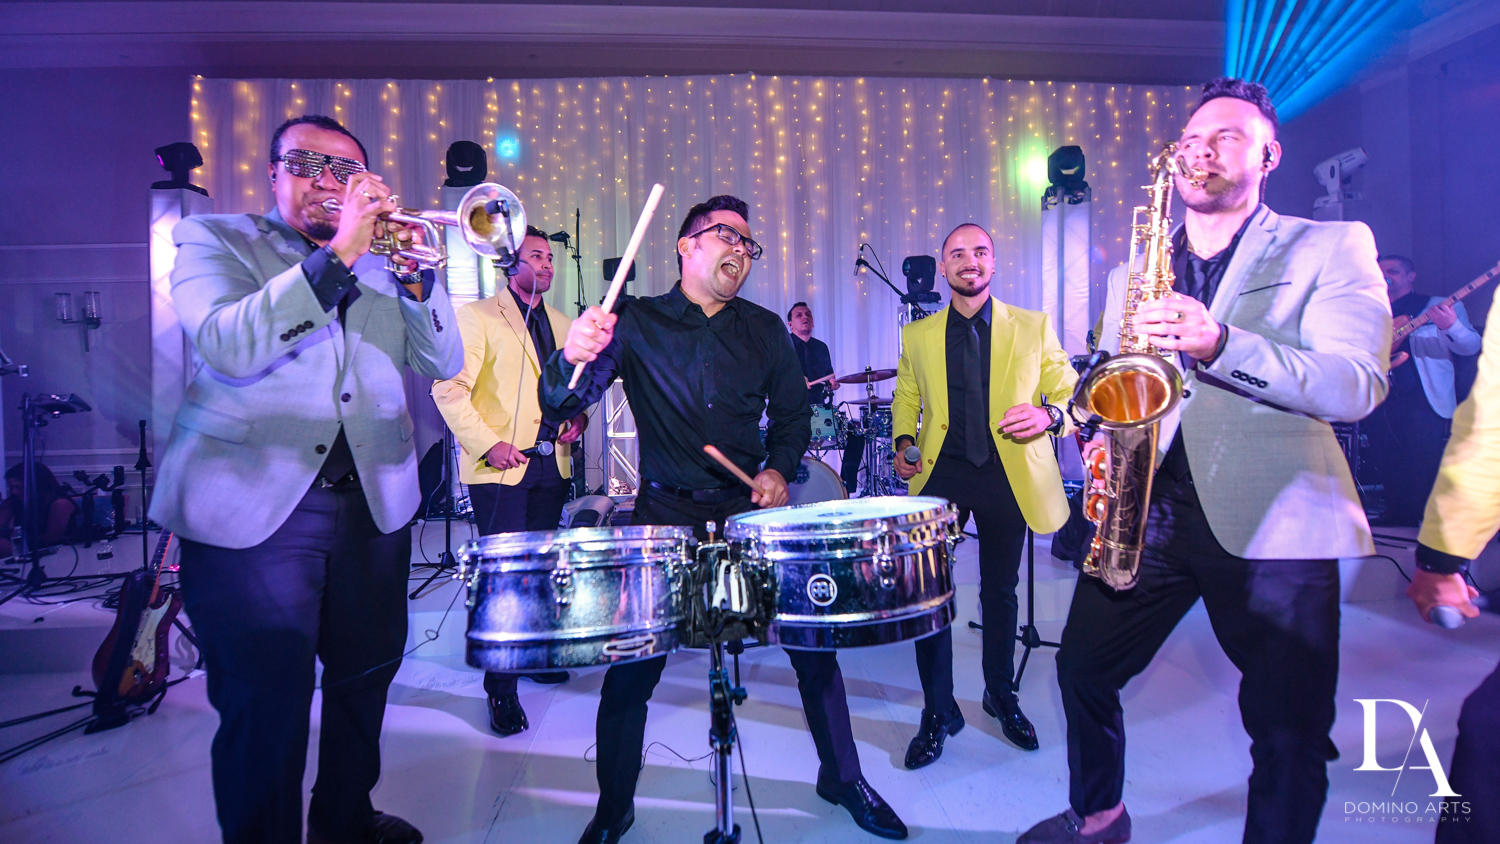 Manolo Puerto Band at A Ritz Carlton Wedding in Key Biscayne by Domino Arts Photography